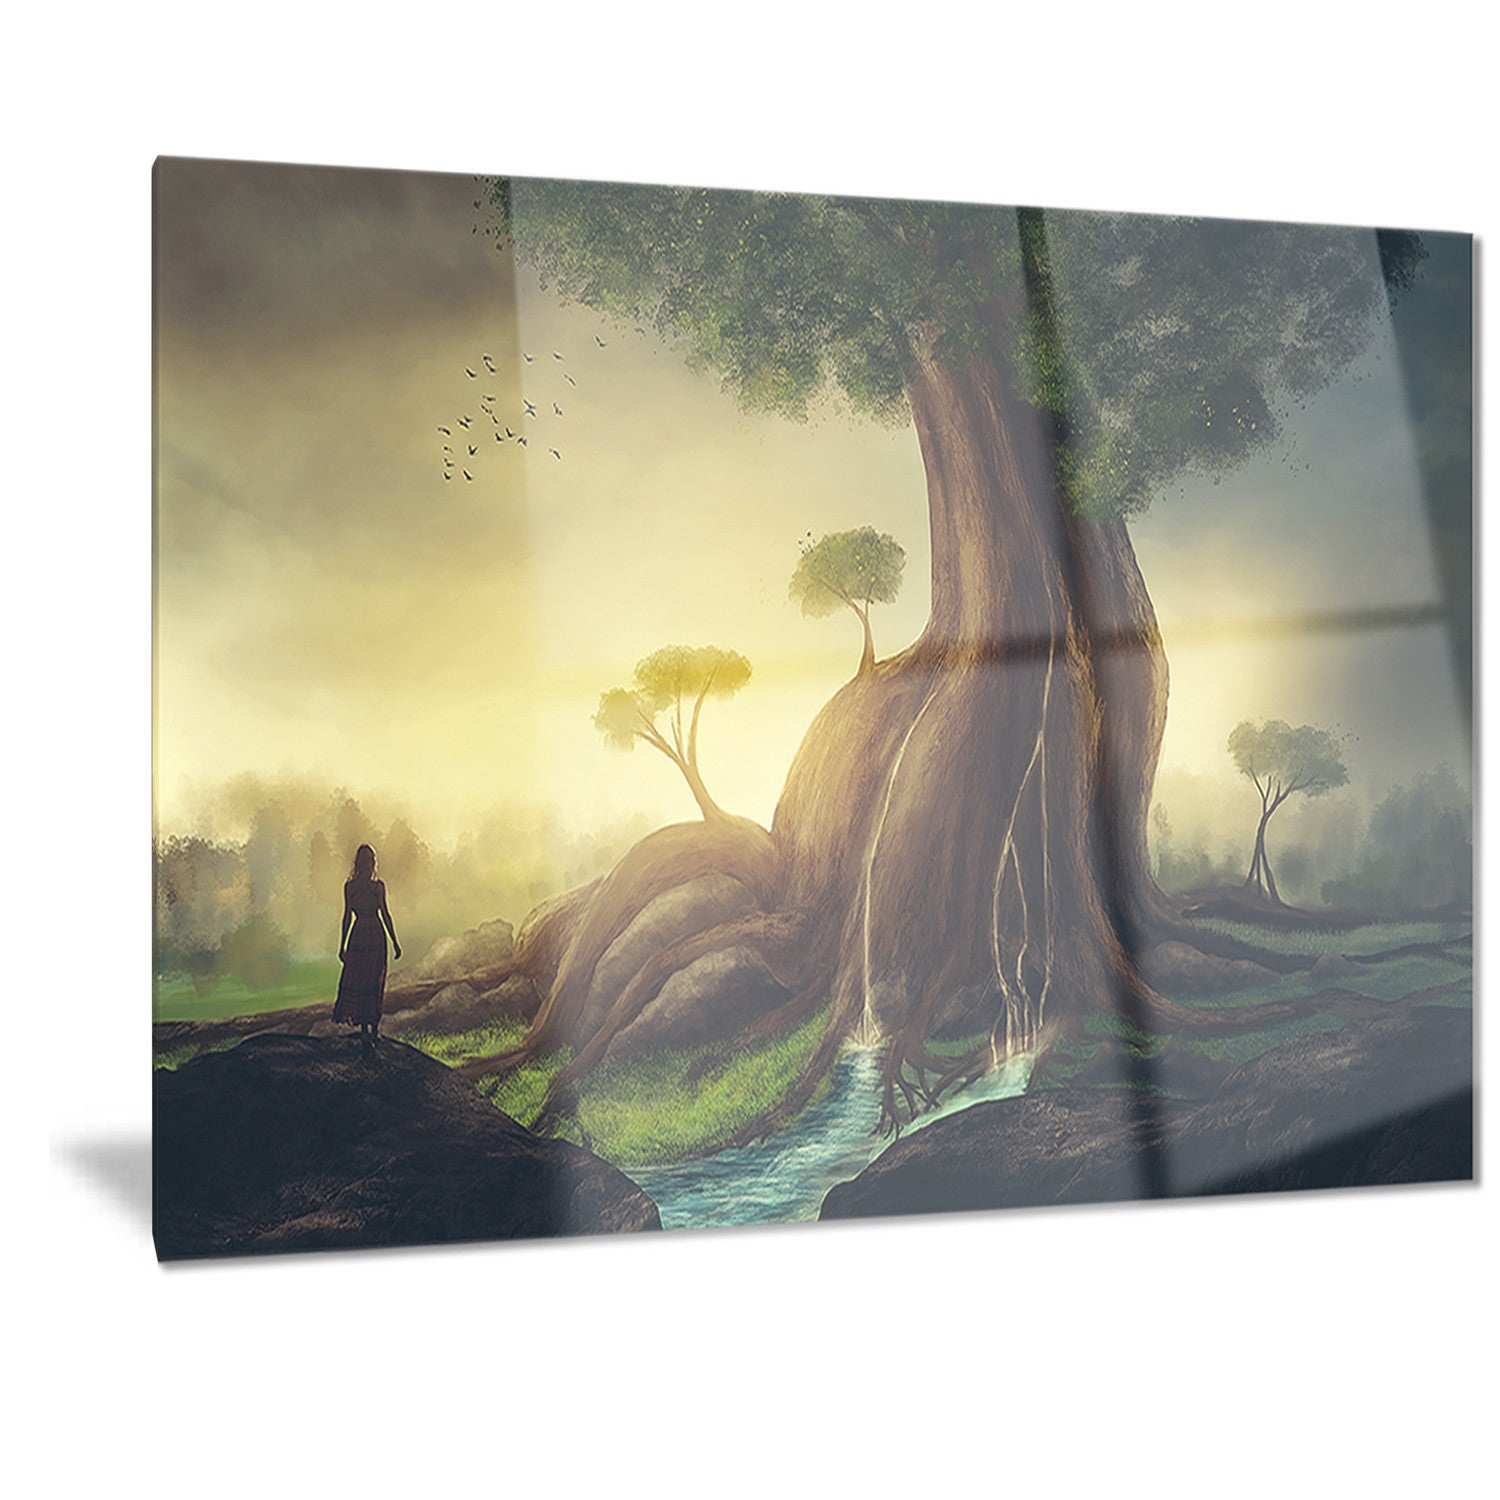 Charming Giant Wall Art Photos - The Wall Art Decorations ...